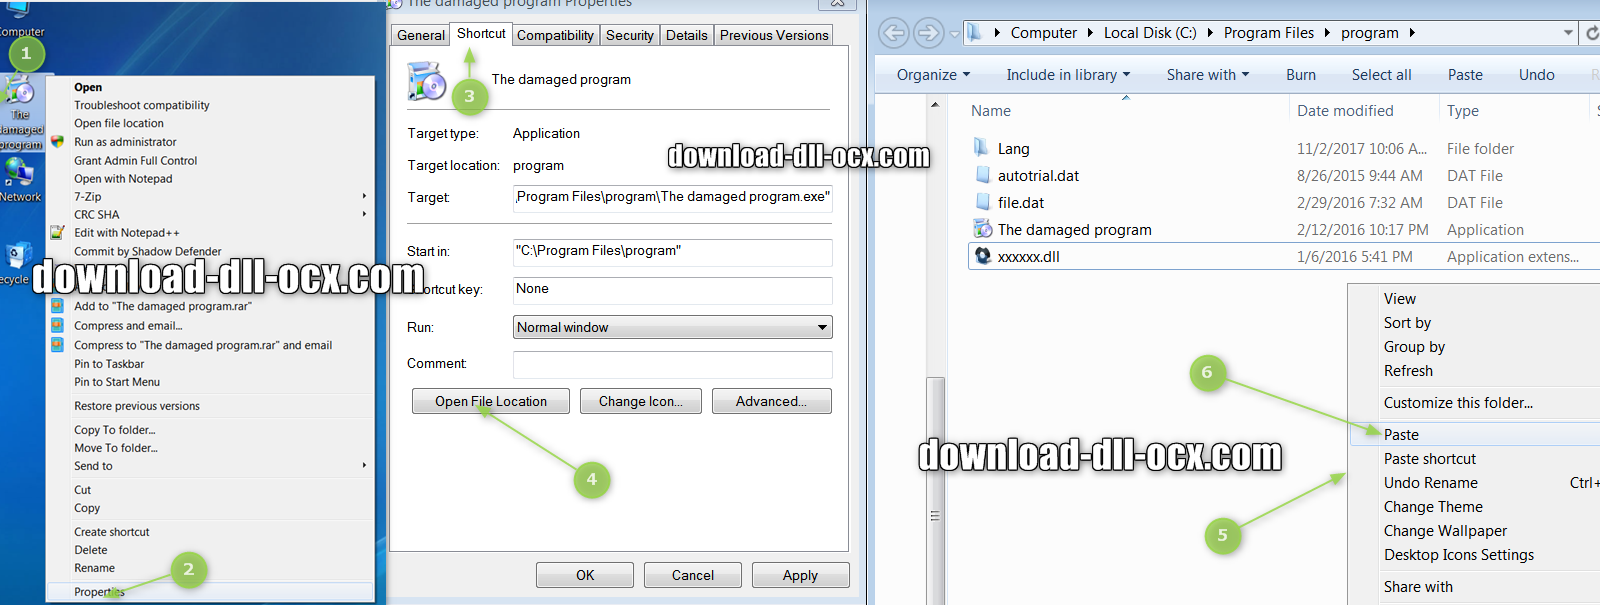 how to install Microsoft.VisualBasic.Vsa.dll file? for fix missing